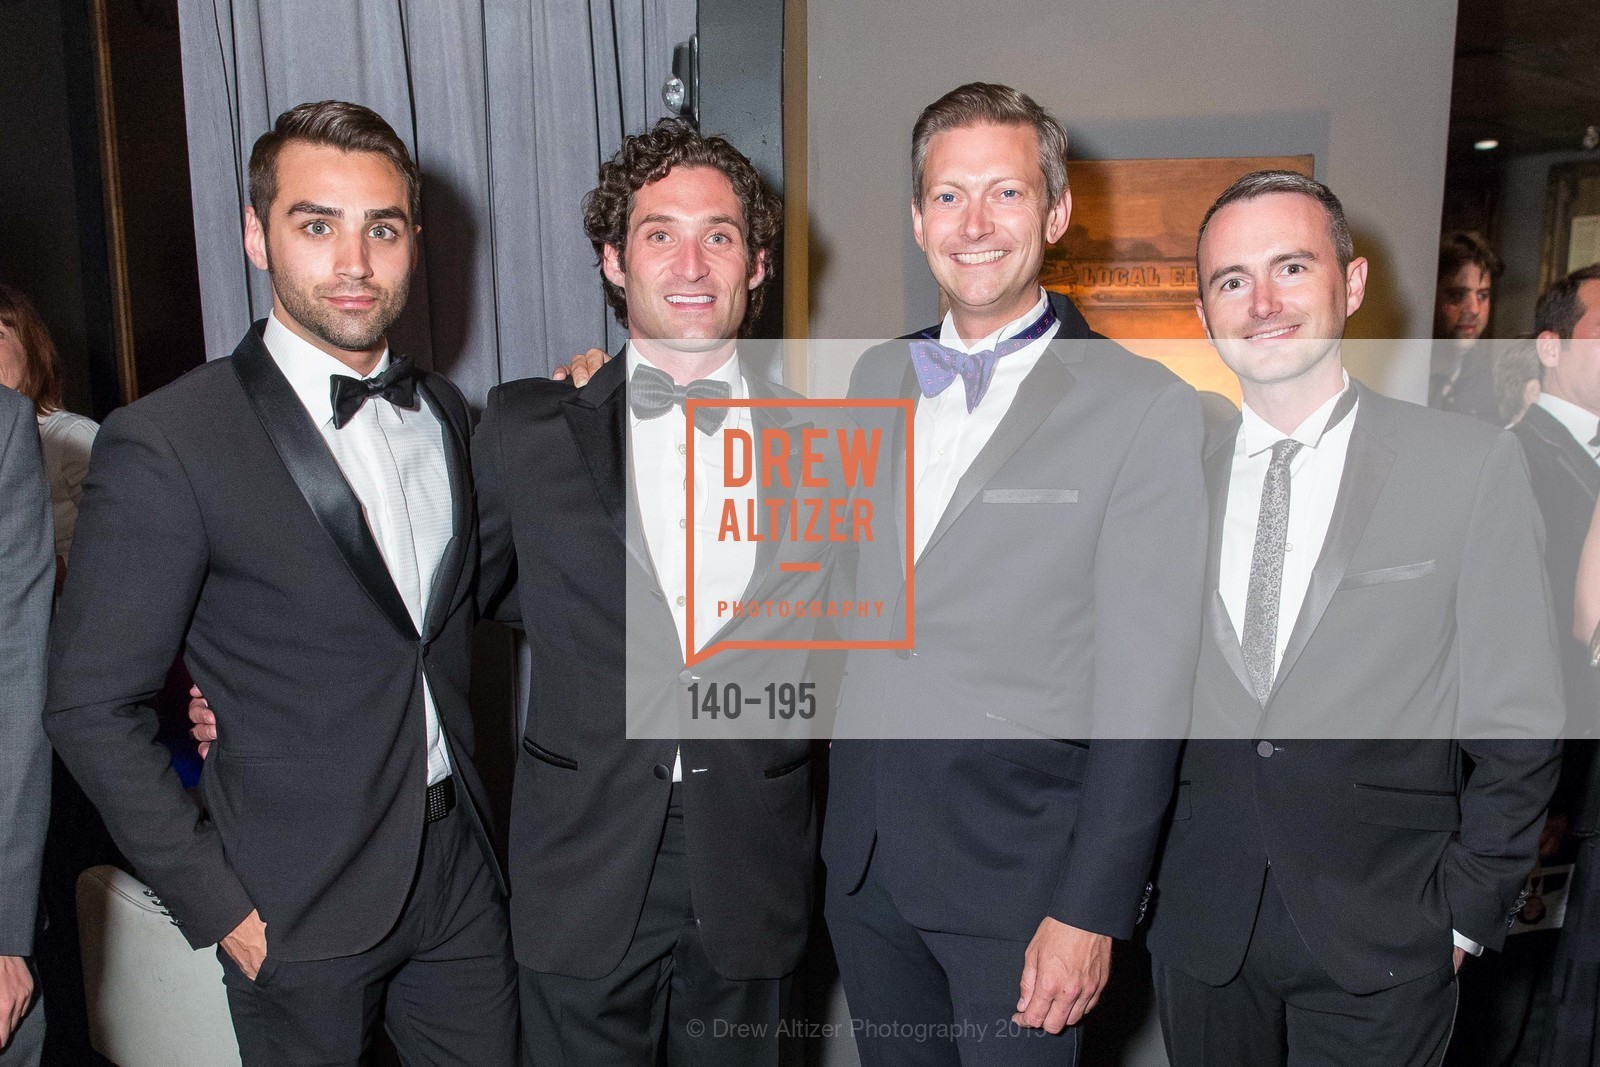 Scott Lake, Justin Fichelson, Michael Minson, Phillip Cannon, Climb Real Estate and Sindeo Celebrate the Launch of Million Dollar Listing San Francisco, Local Edition San Francisco. 691 Market St, July 8th, 2015,Drew Altizer, Drew Altizer Photography, full-service agency, private events, San Francisco photographer, photographer california